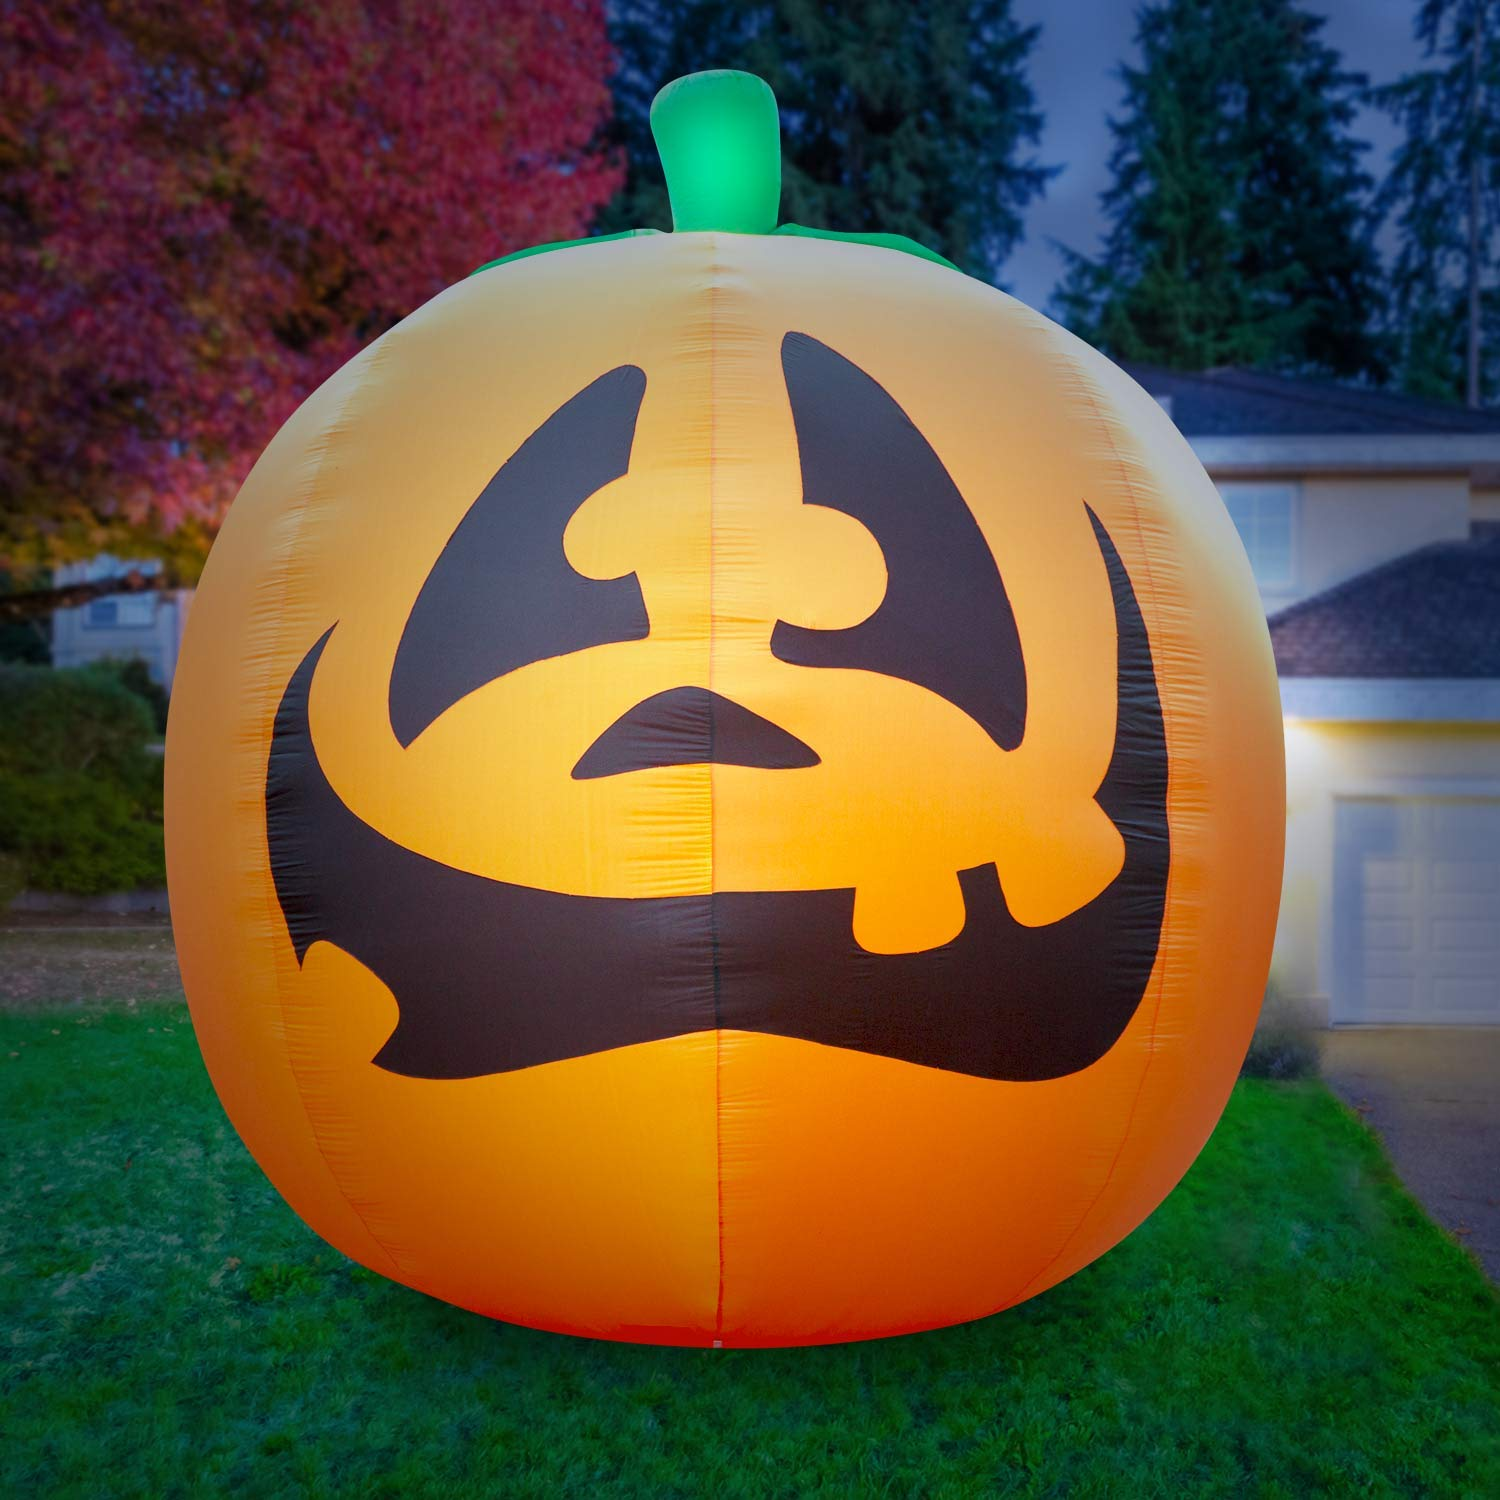 Holidayana Giant 10 Ft Airblown Inflatable Halloween Pumpkin- Inflatable Halloween Decoration with Super Bright Internal Lights, Built in Fan & Anchor Ropes HD-GP